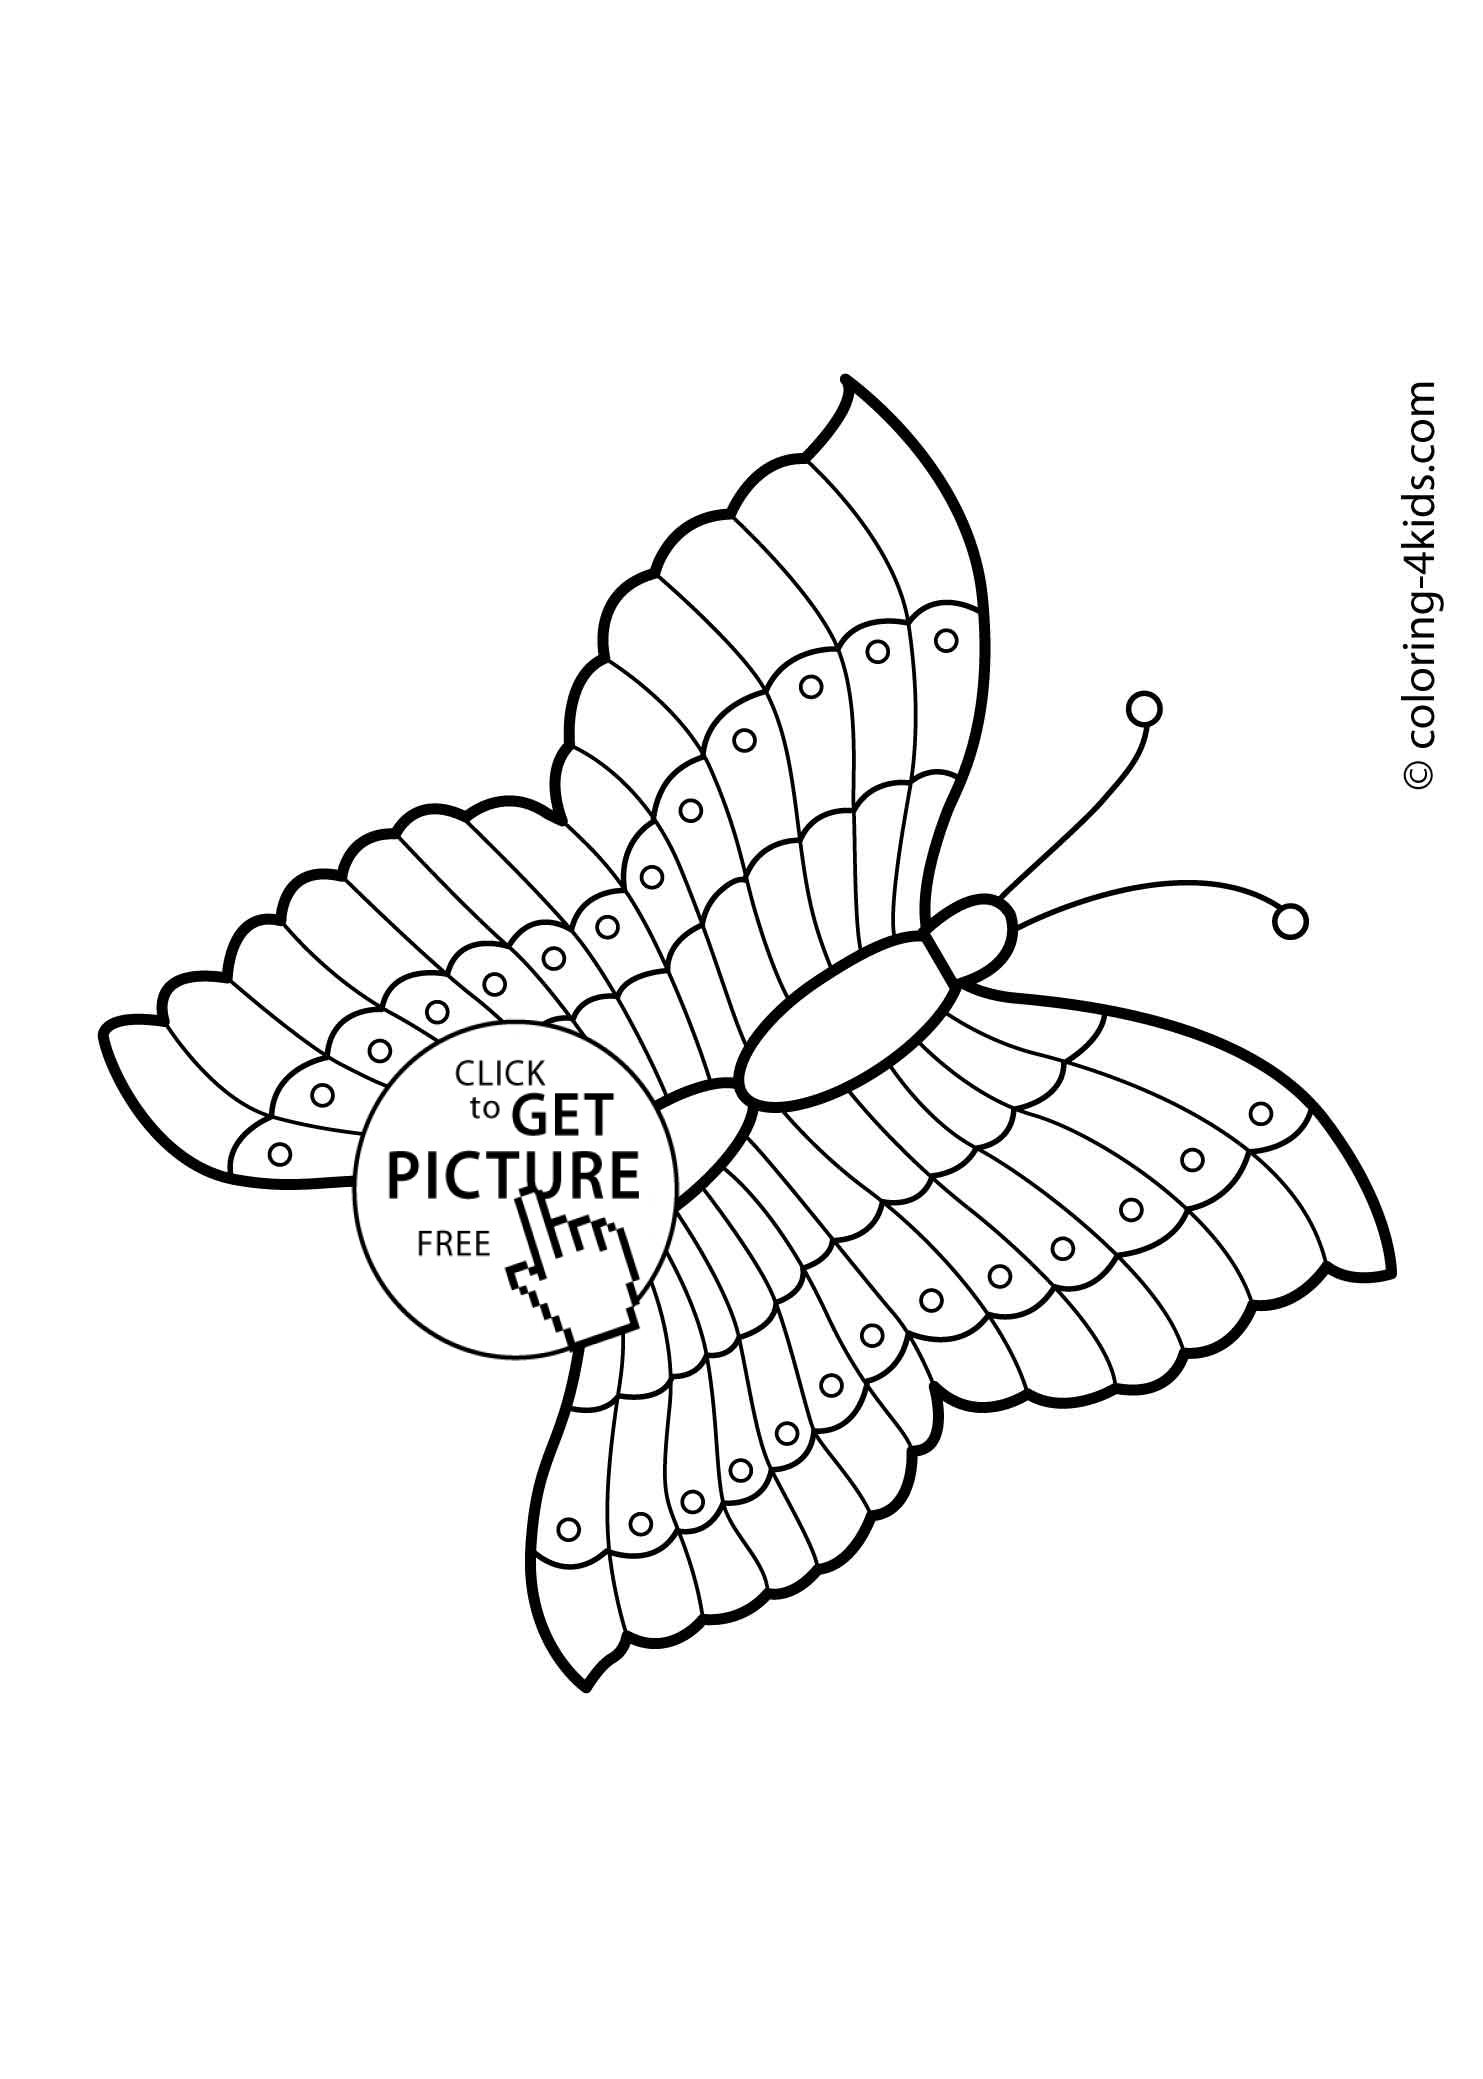 Butterfly coloring pages for kids, printable